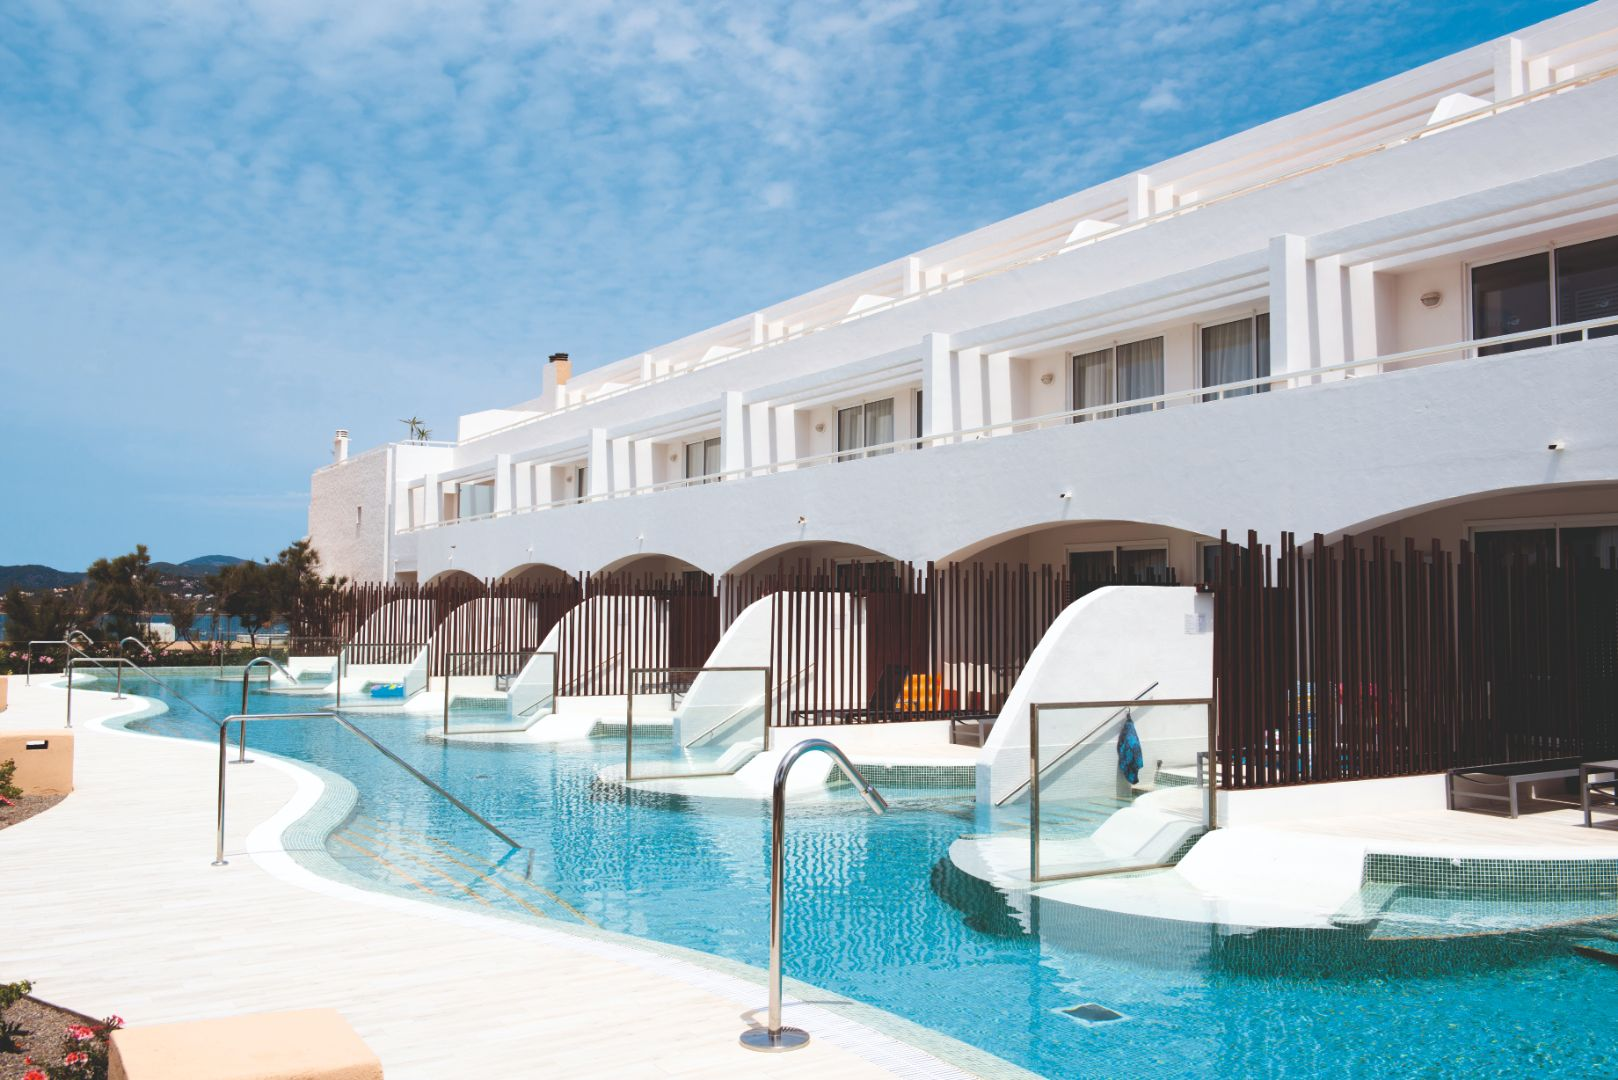 Best Swim-Up Rooms in the World - Holiday Hypermarket